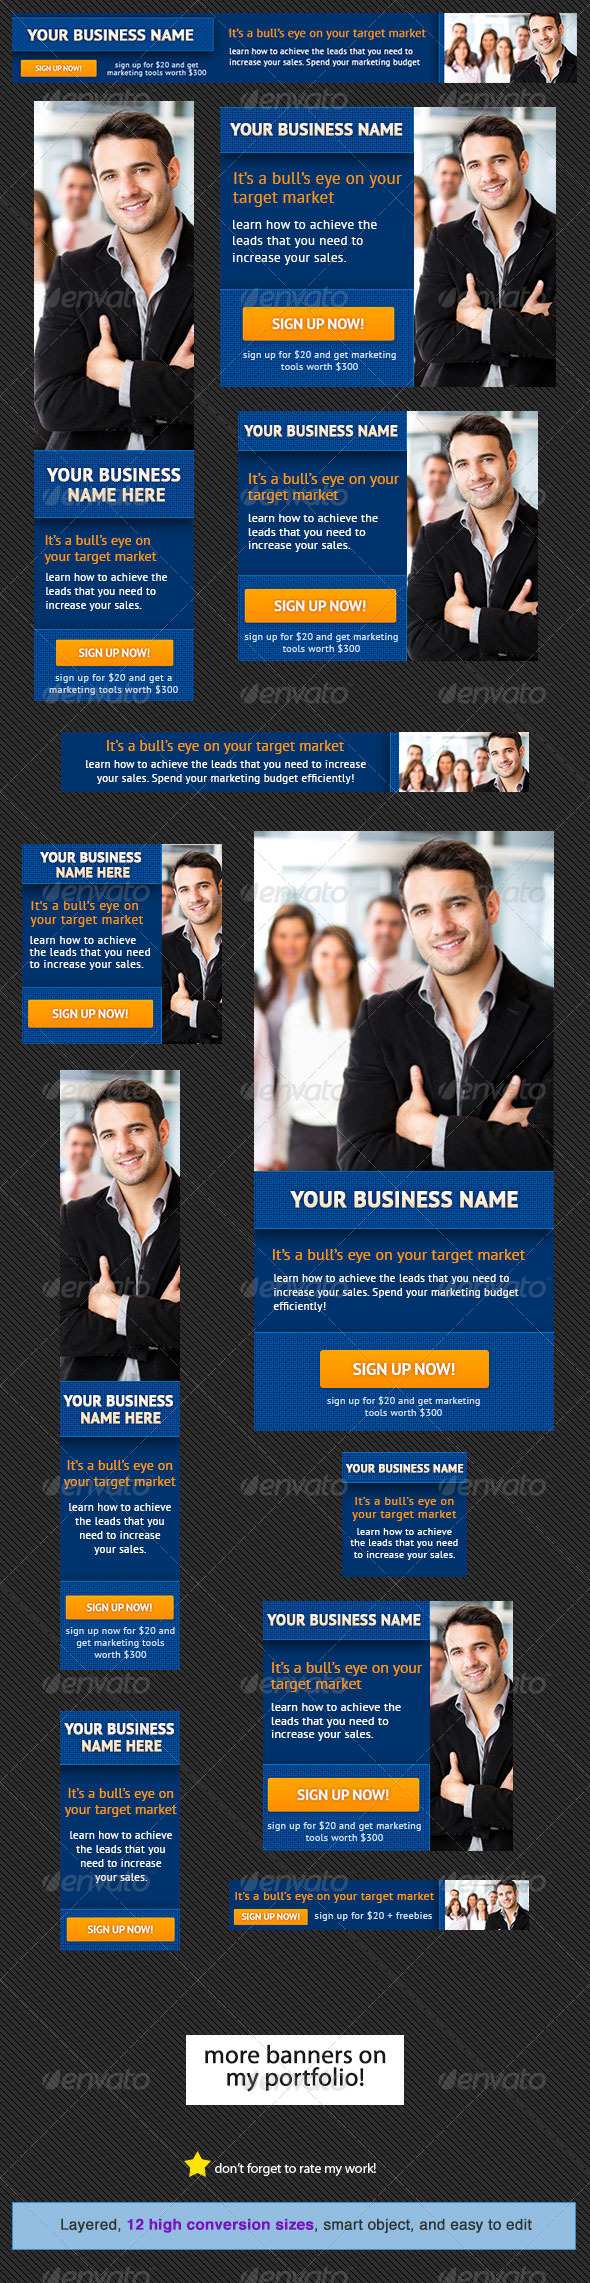 Corporate Banner Design Template 8